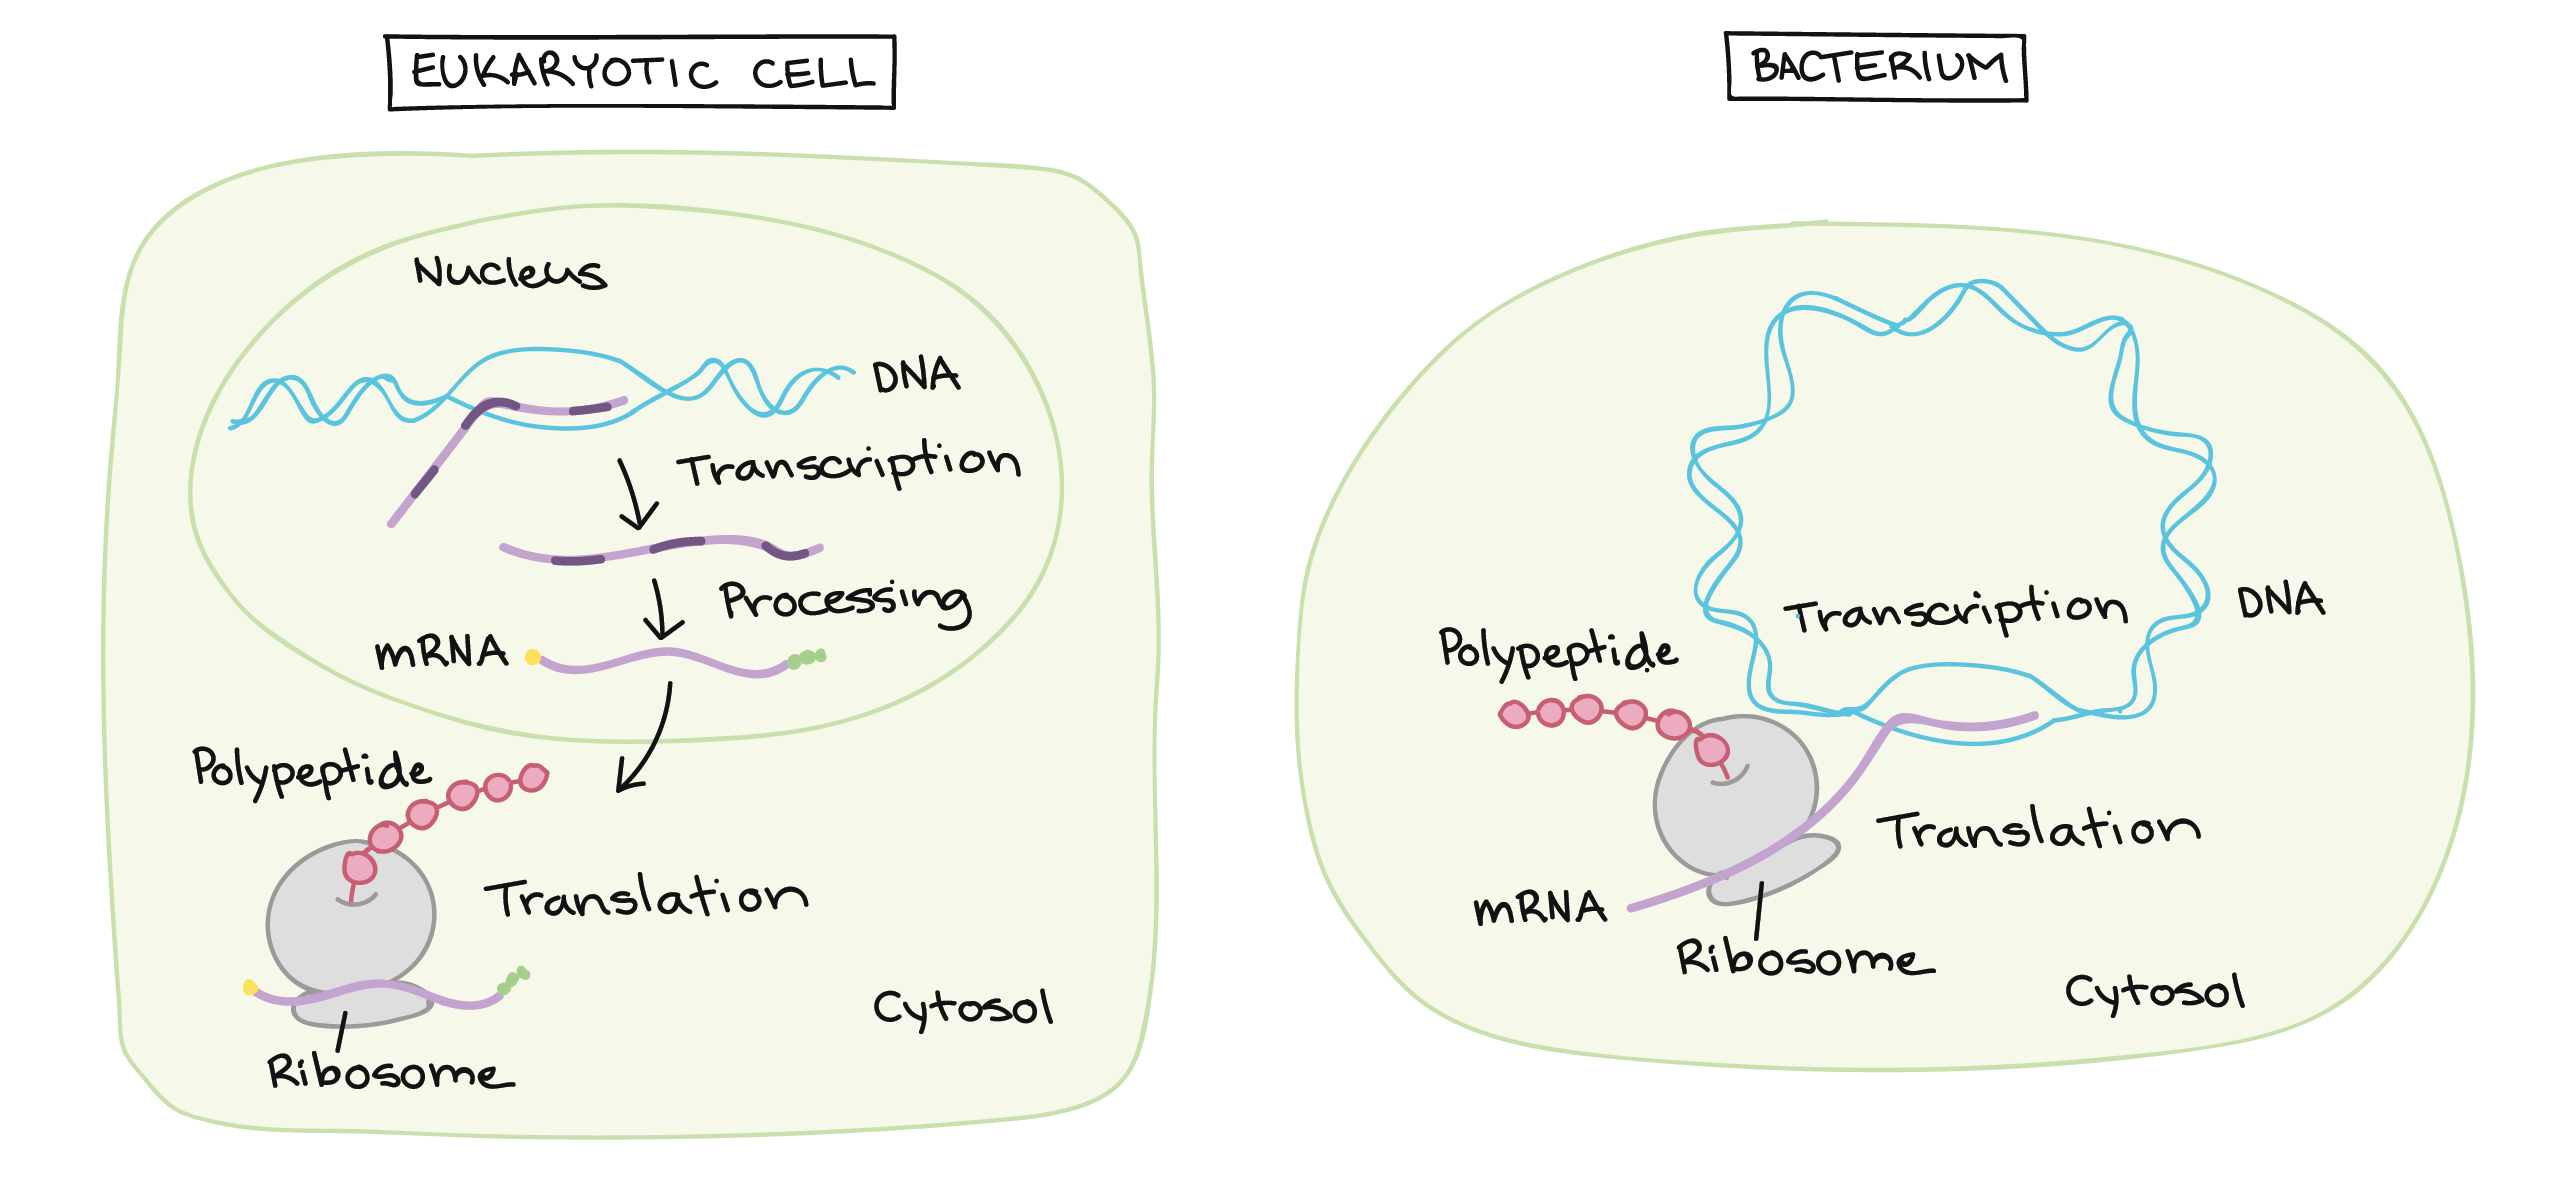 Stages Of Transcription Initiation Elongation Termination Cell Diagram Labeled Similarities Between Prokaryotic And Eukaryotic Article Khan Academy